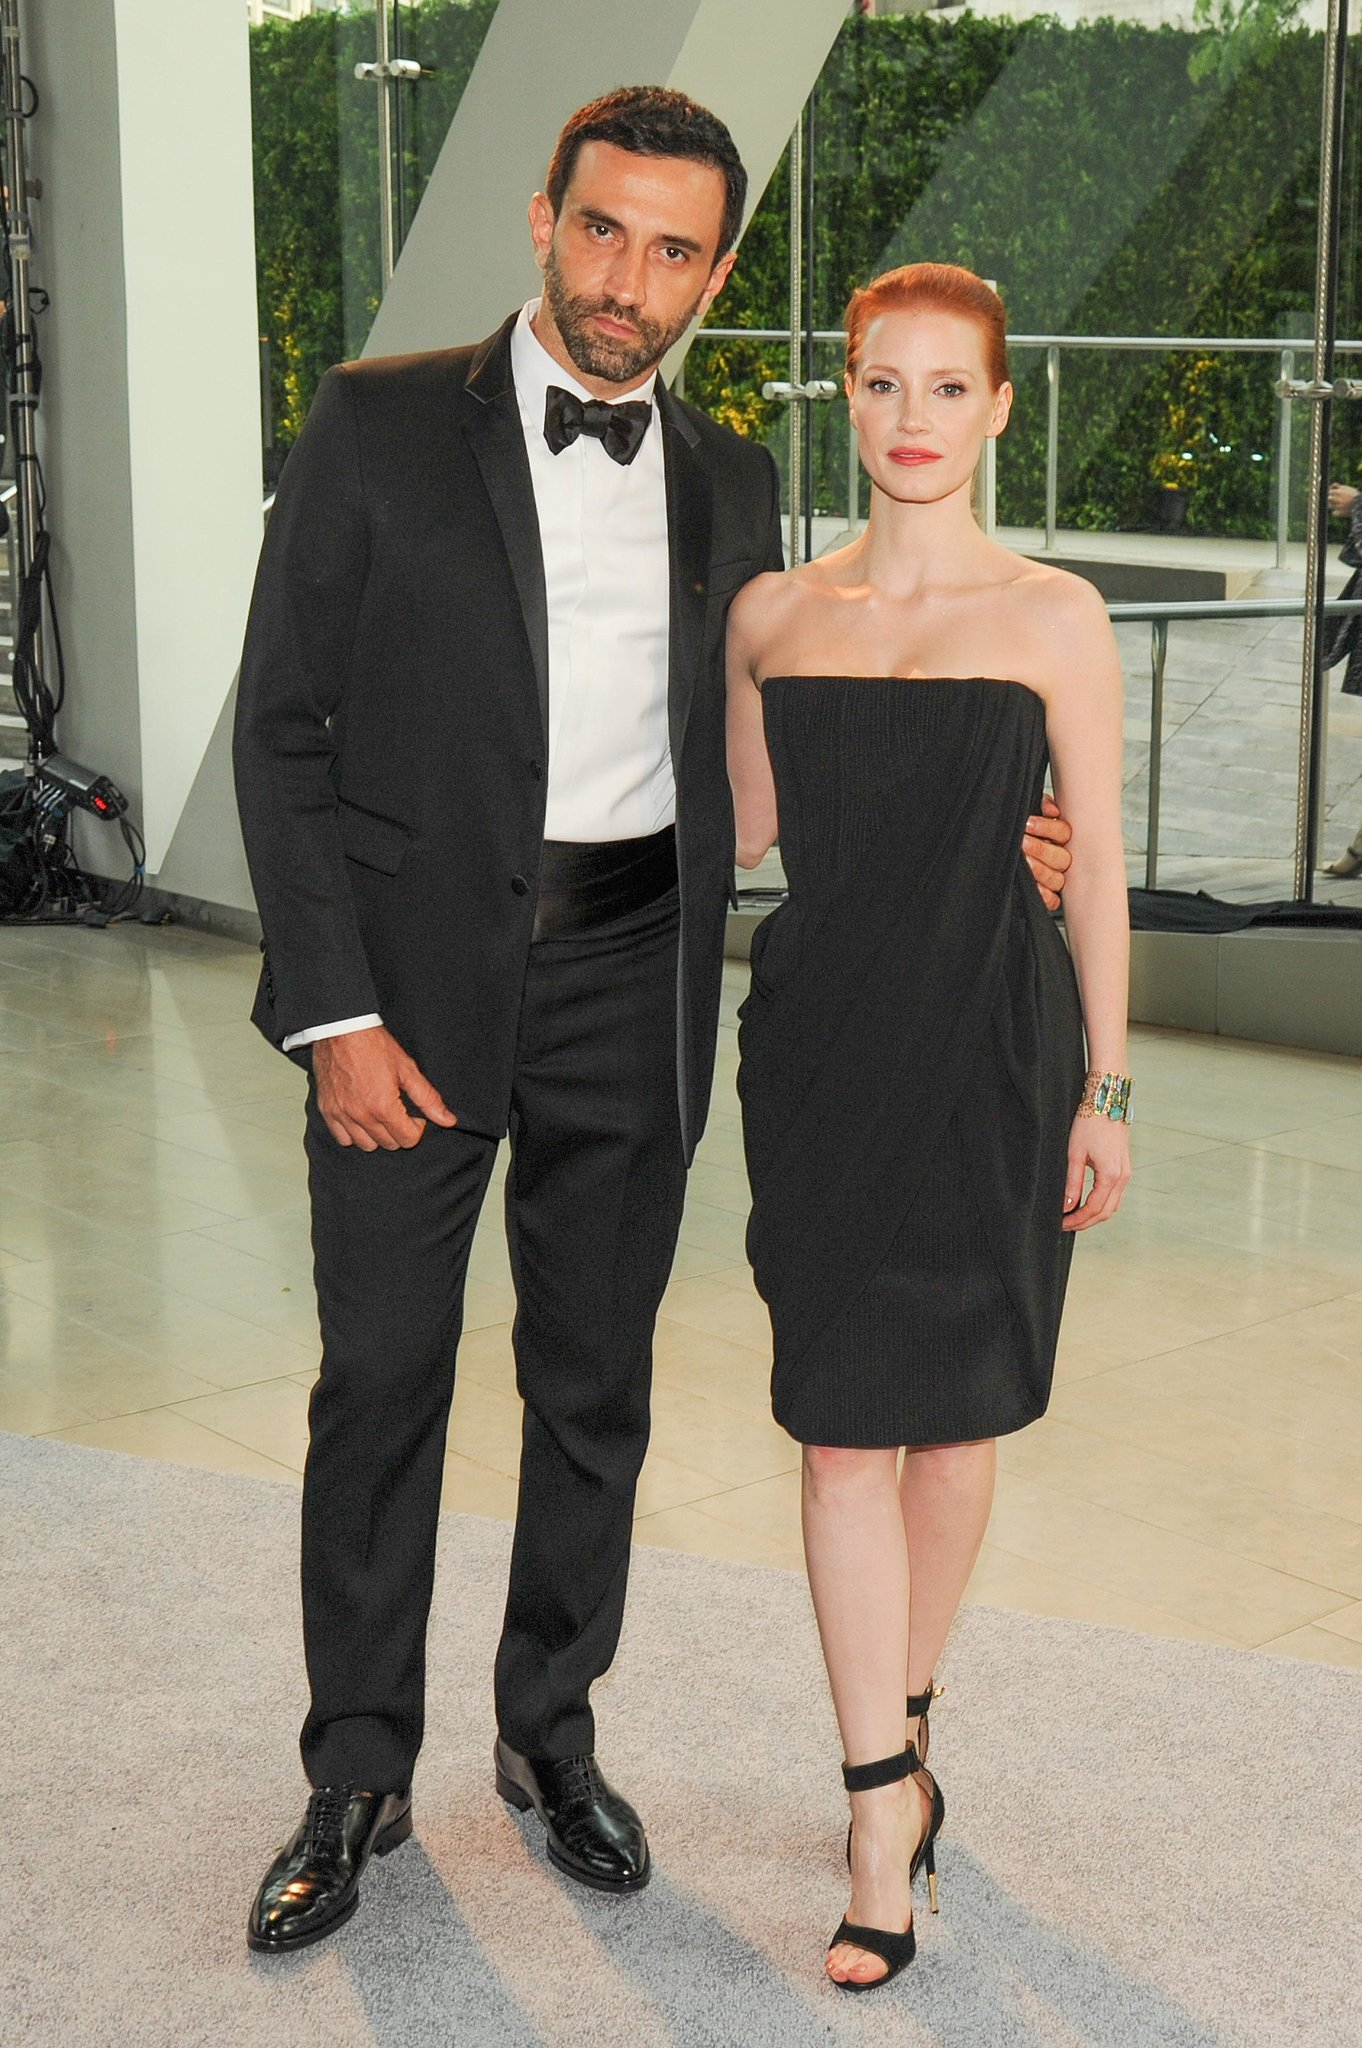 Riccardo Tisci with Jessica Chastain at the 2013 CFDA Awards. Source: Neil Rasmus/BFAnyc.com